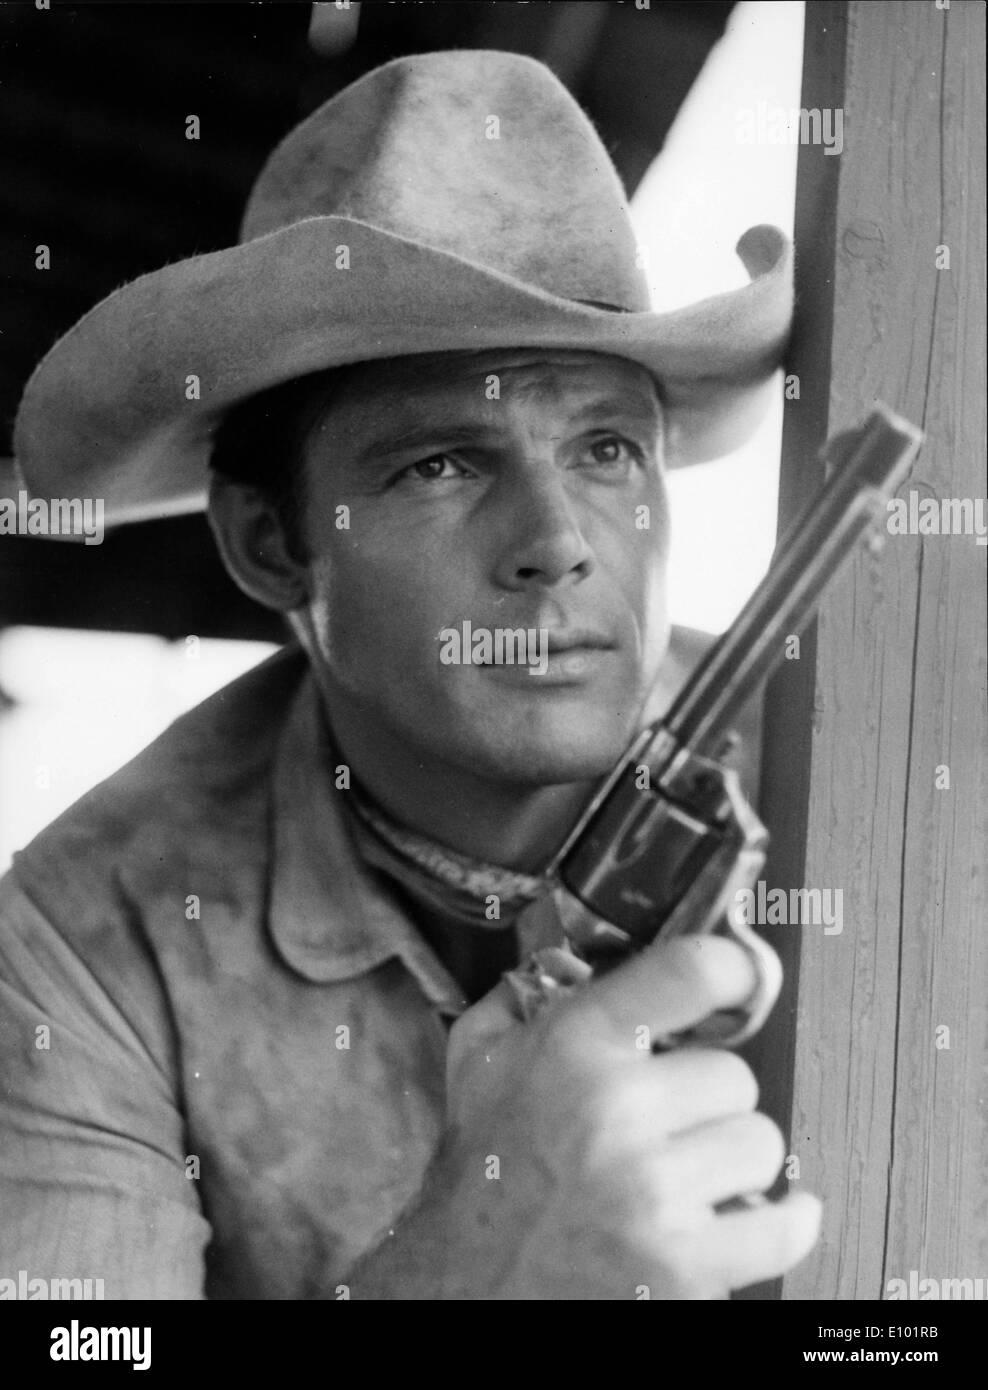 Actor Adam West in a western film scene - Stock Image